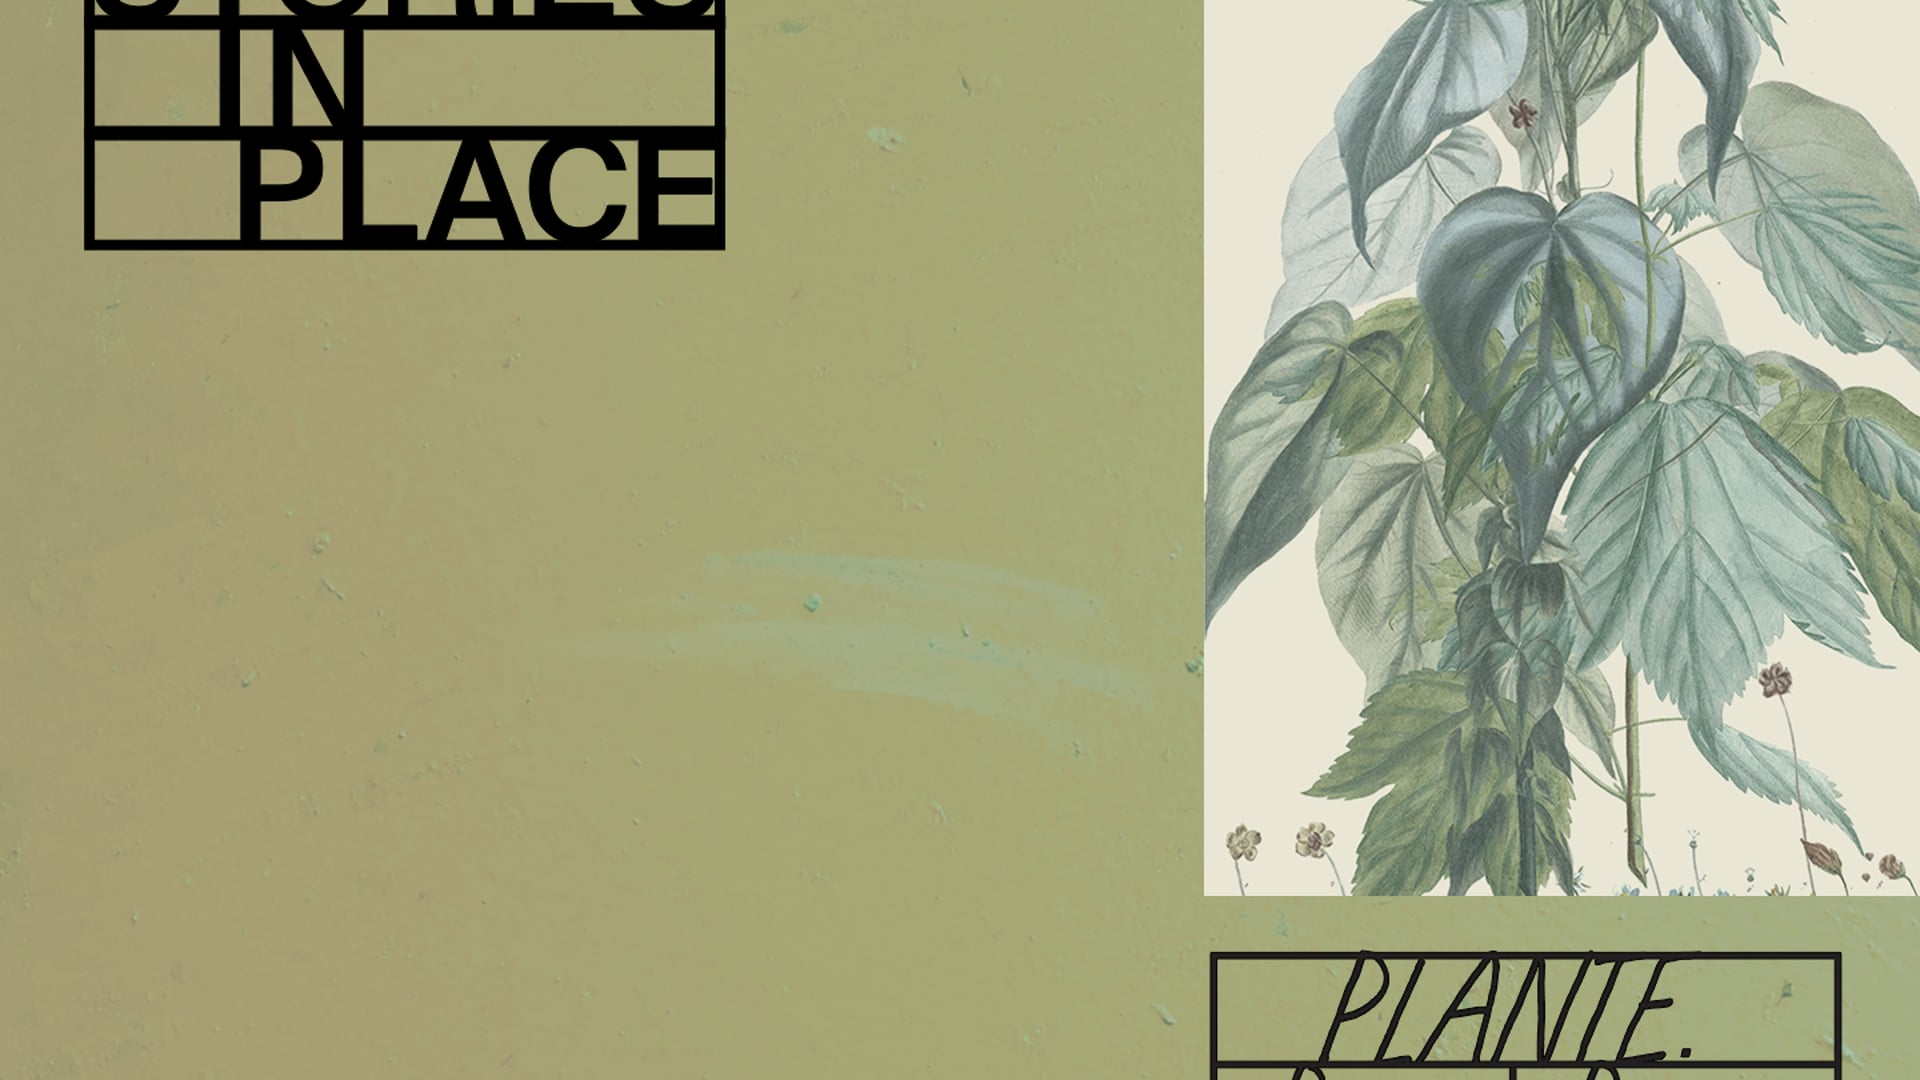 Stories In Place: Plante.